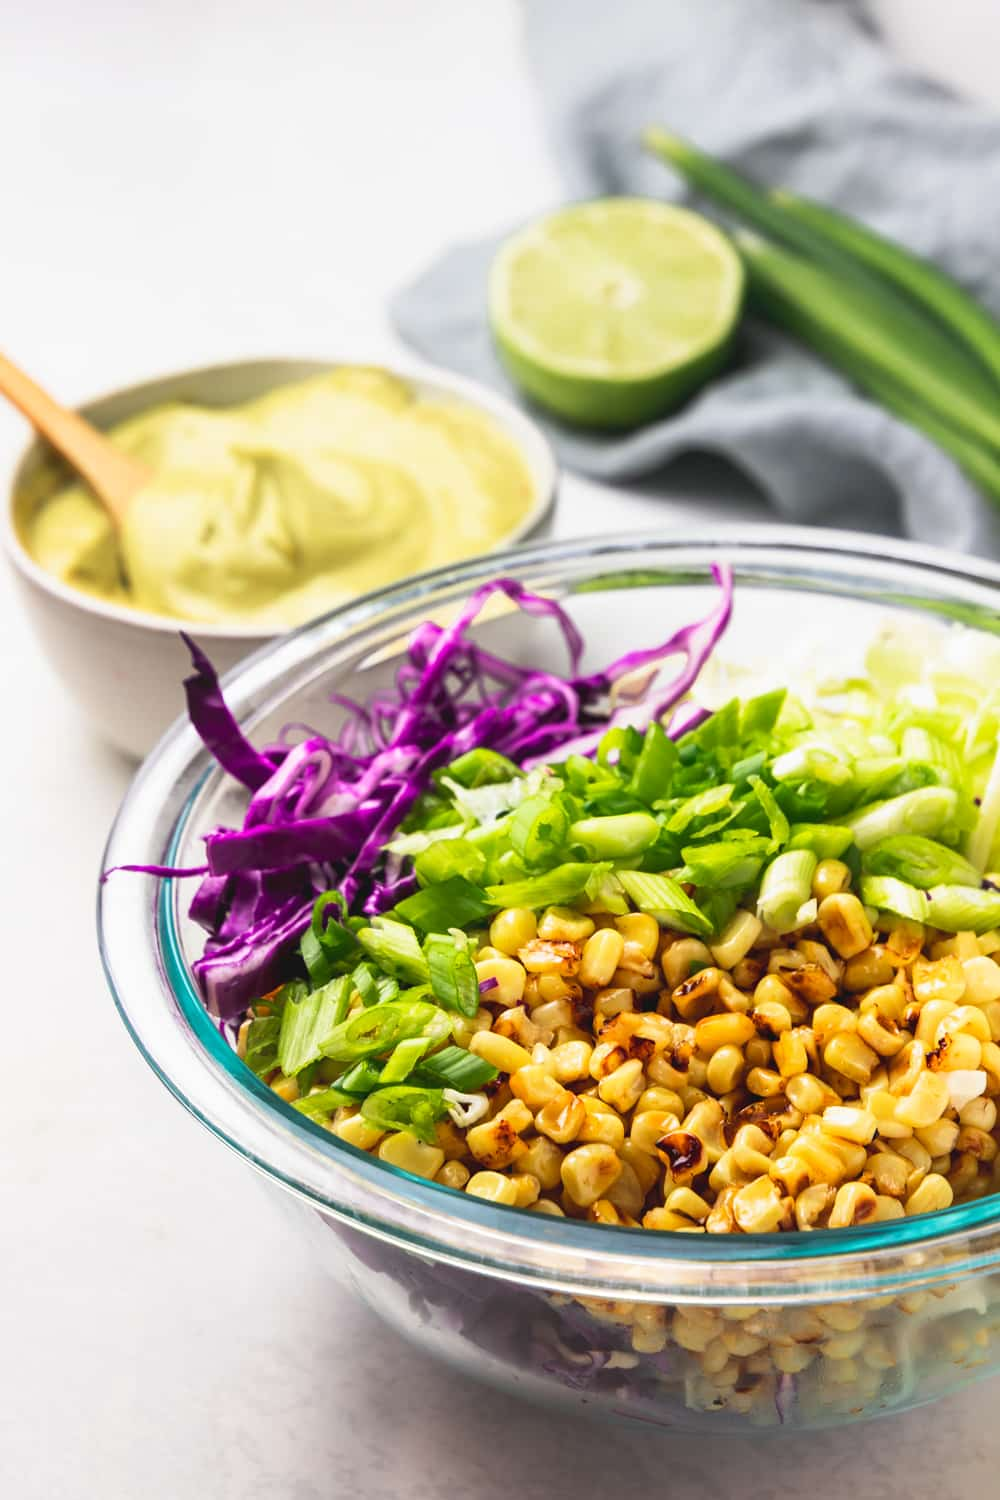 Ingredients for charred corn slaw with avocado dressing